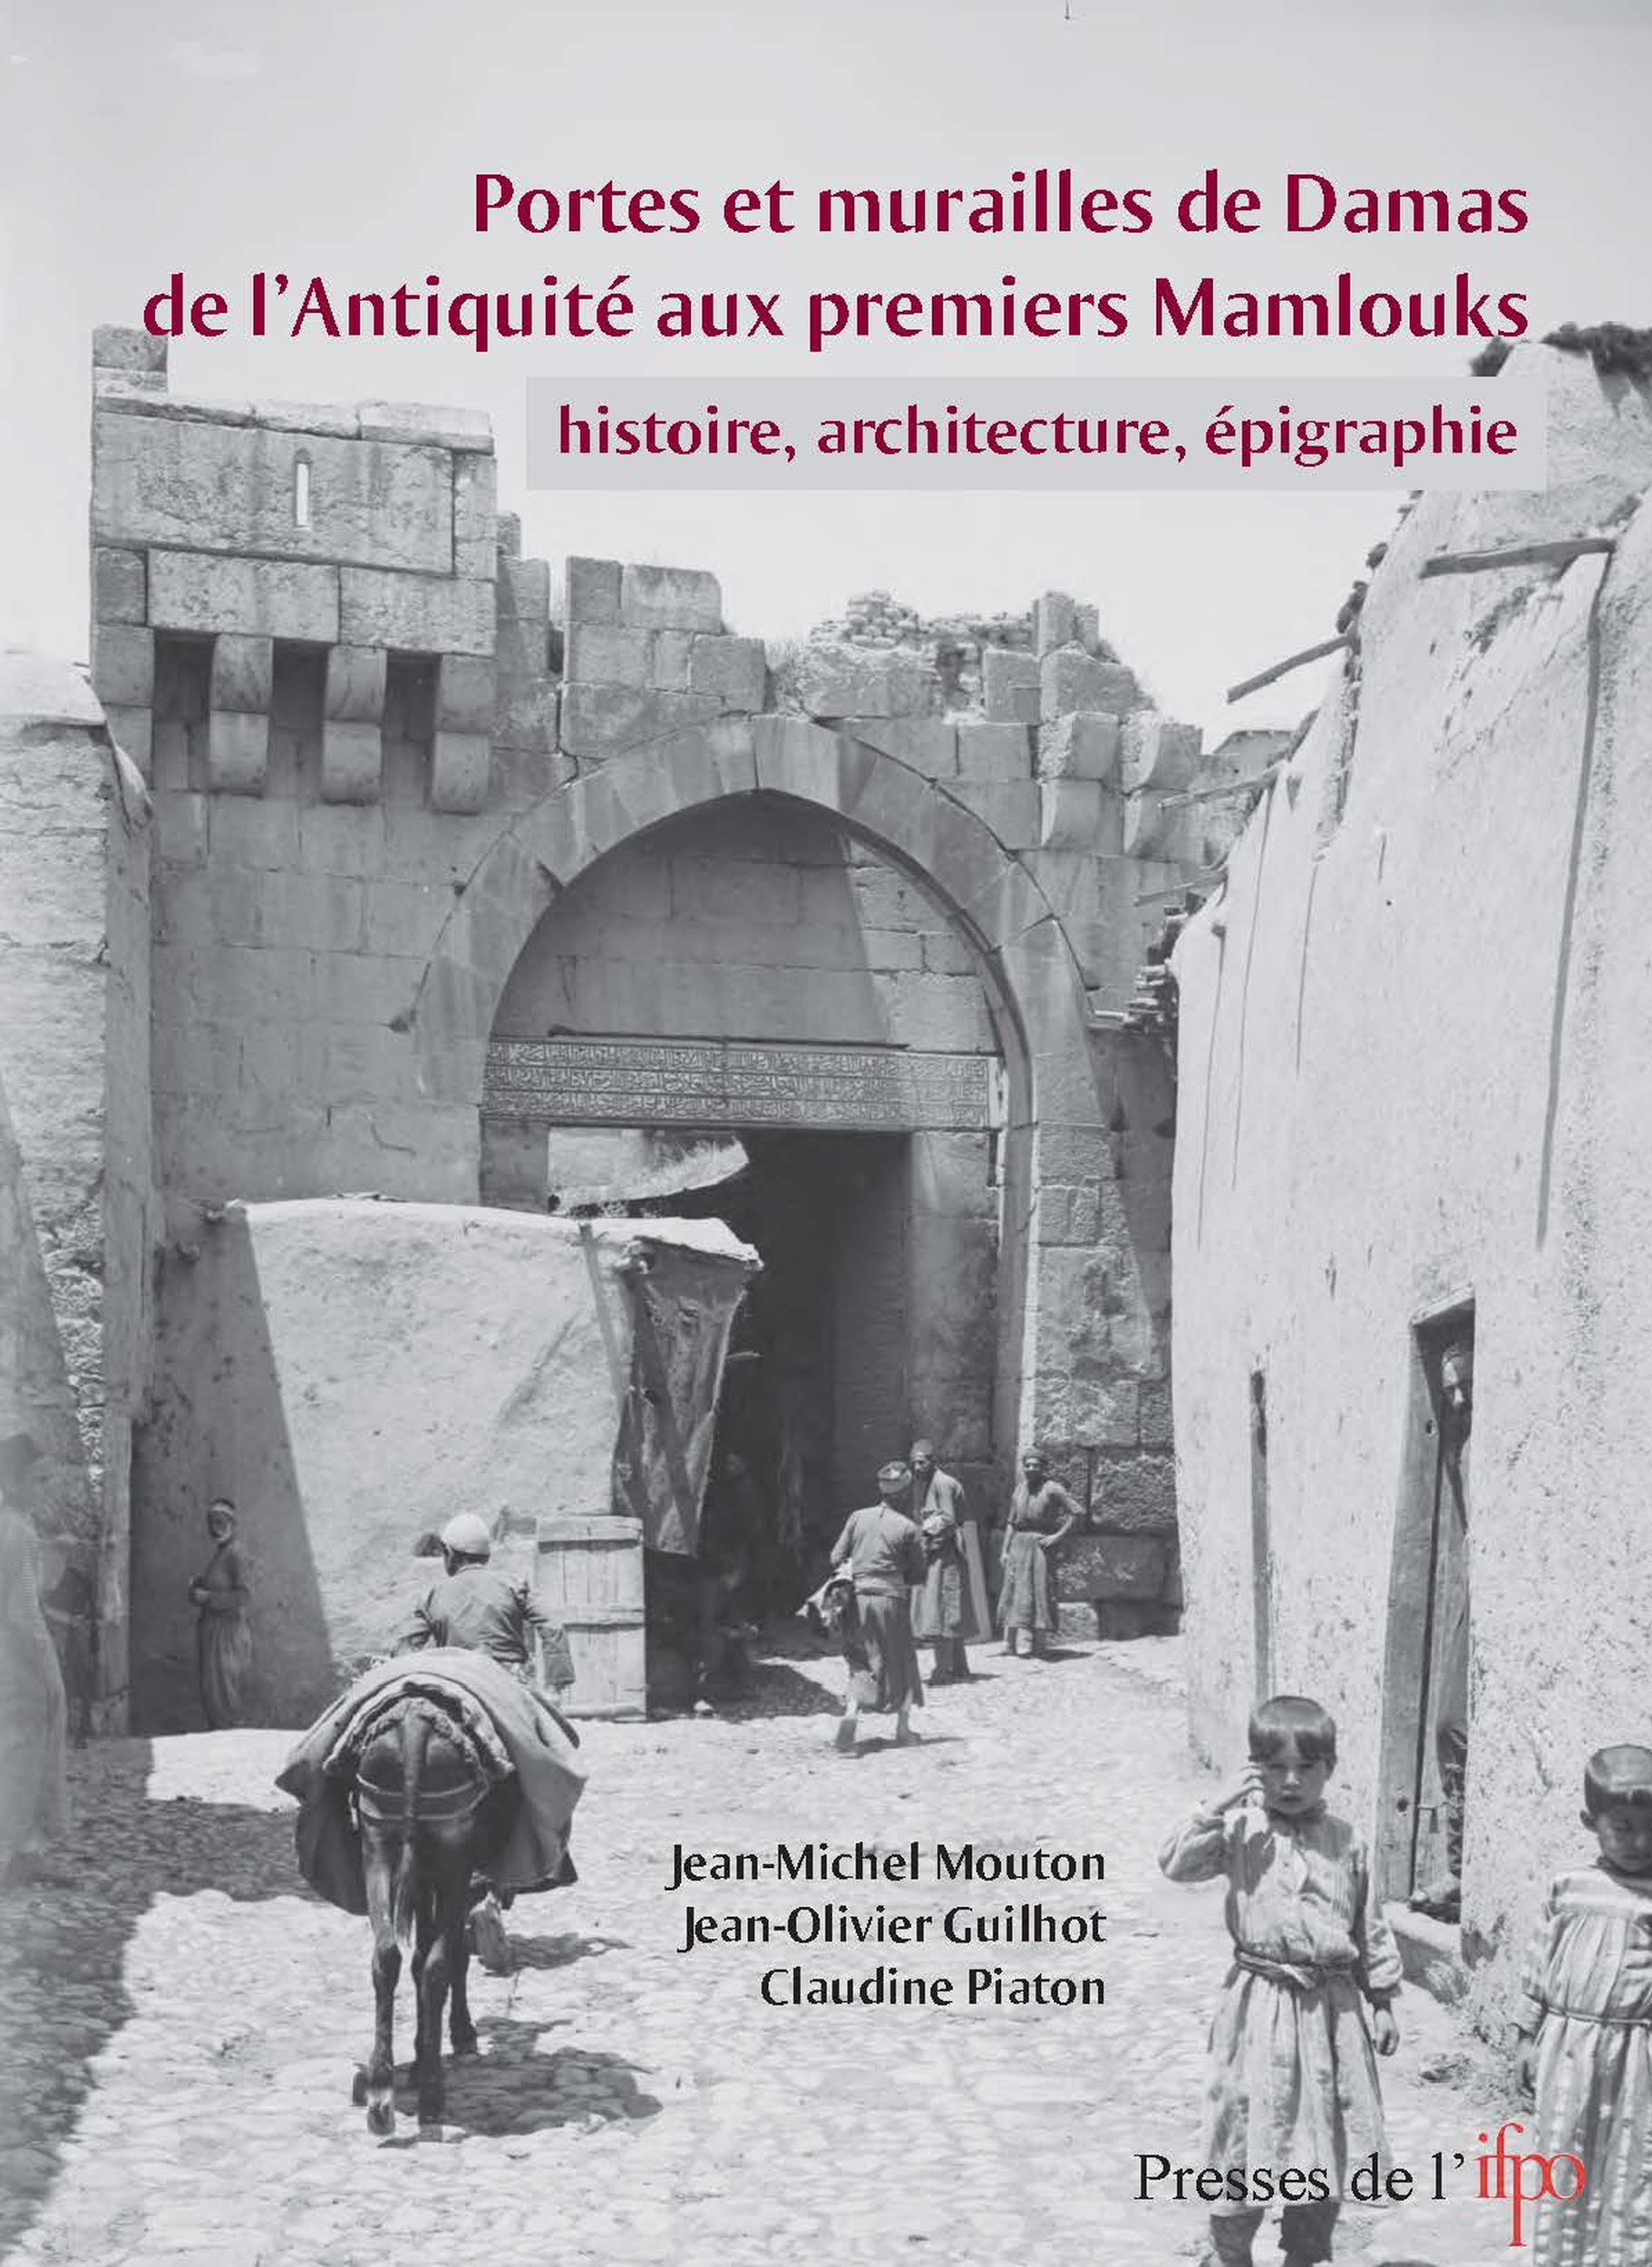 Ebook architecture history of